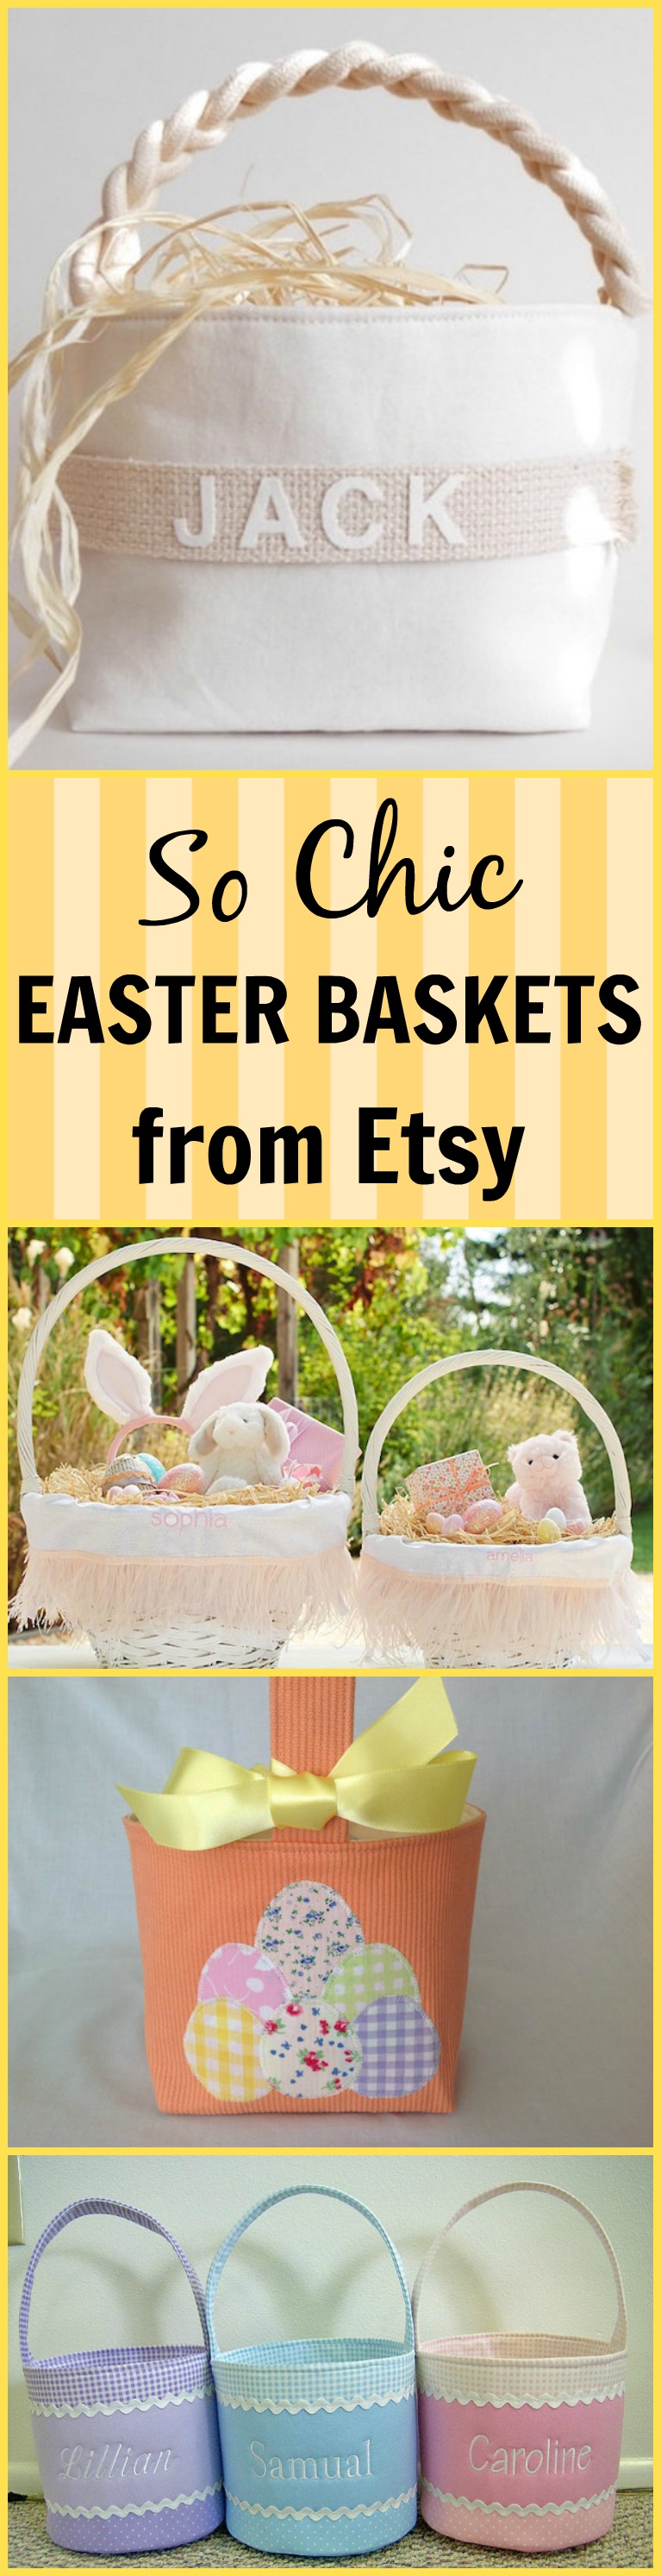 Chic Easter Baskets